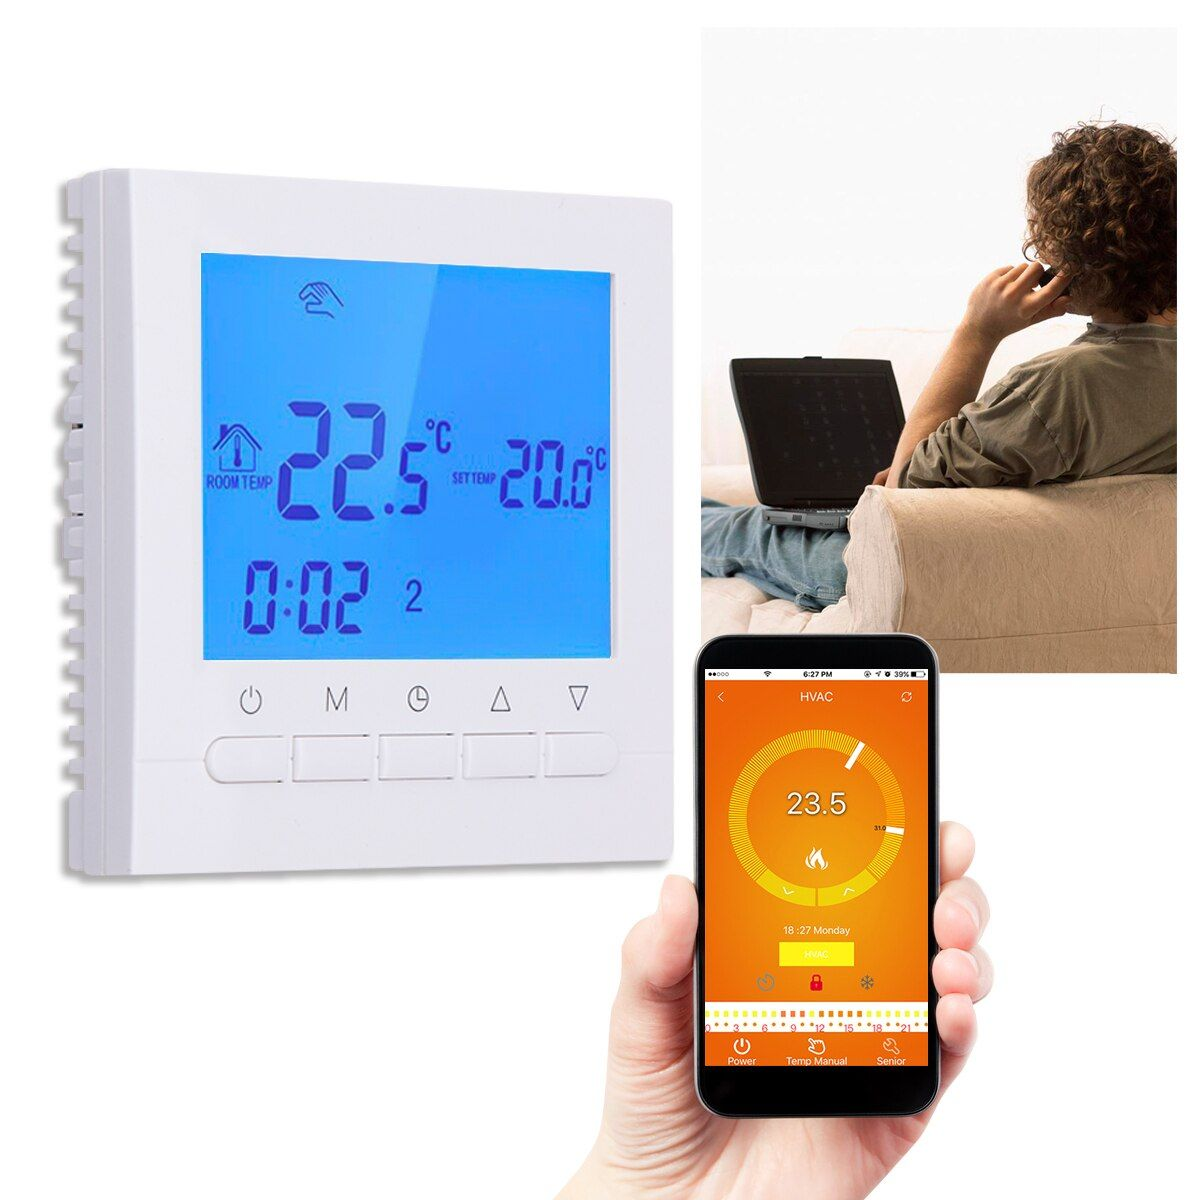 LCD display Wireless Thermostat Underfloor Electric Heating App Control WIFI Control Thermoregulator Temperature Controller